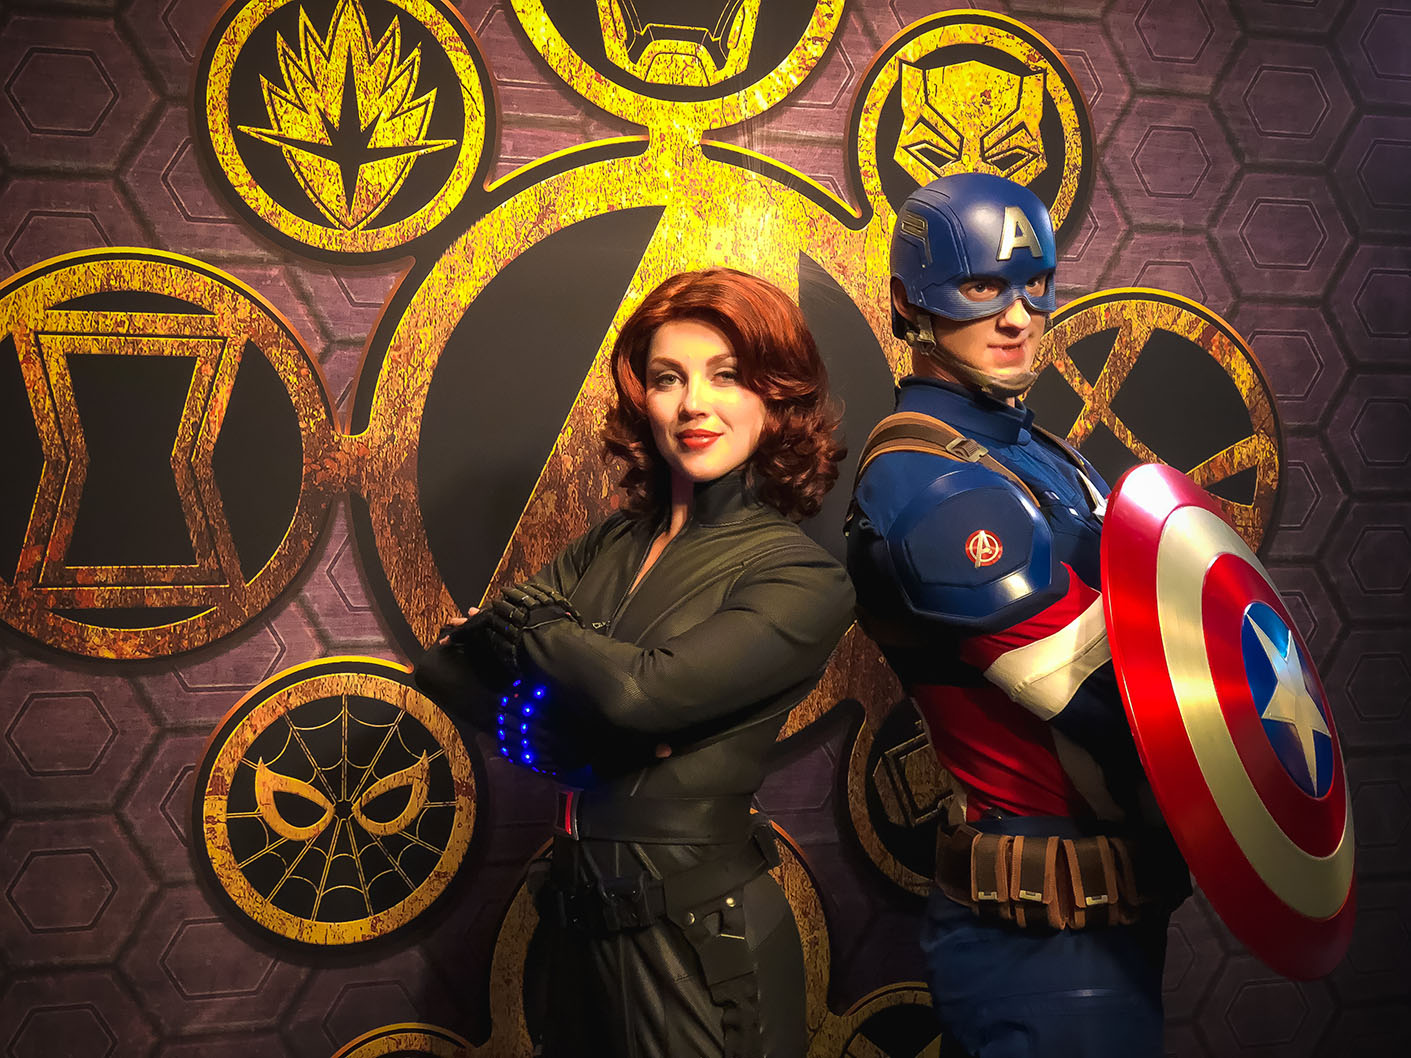 Marvel Signature Meal at Disneyland Paris - Black Widow and Captain America